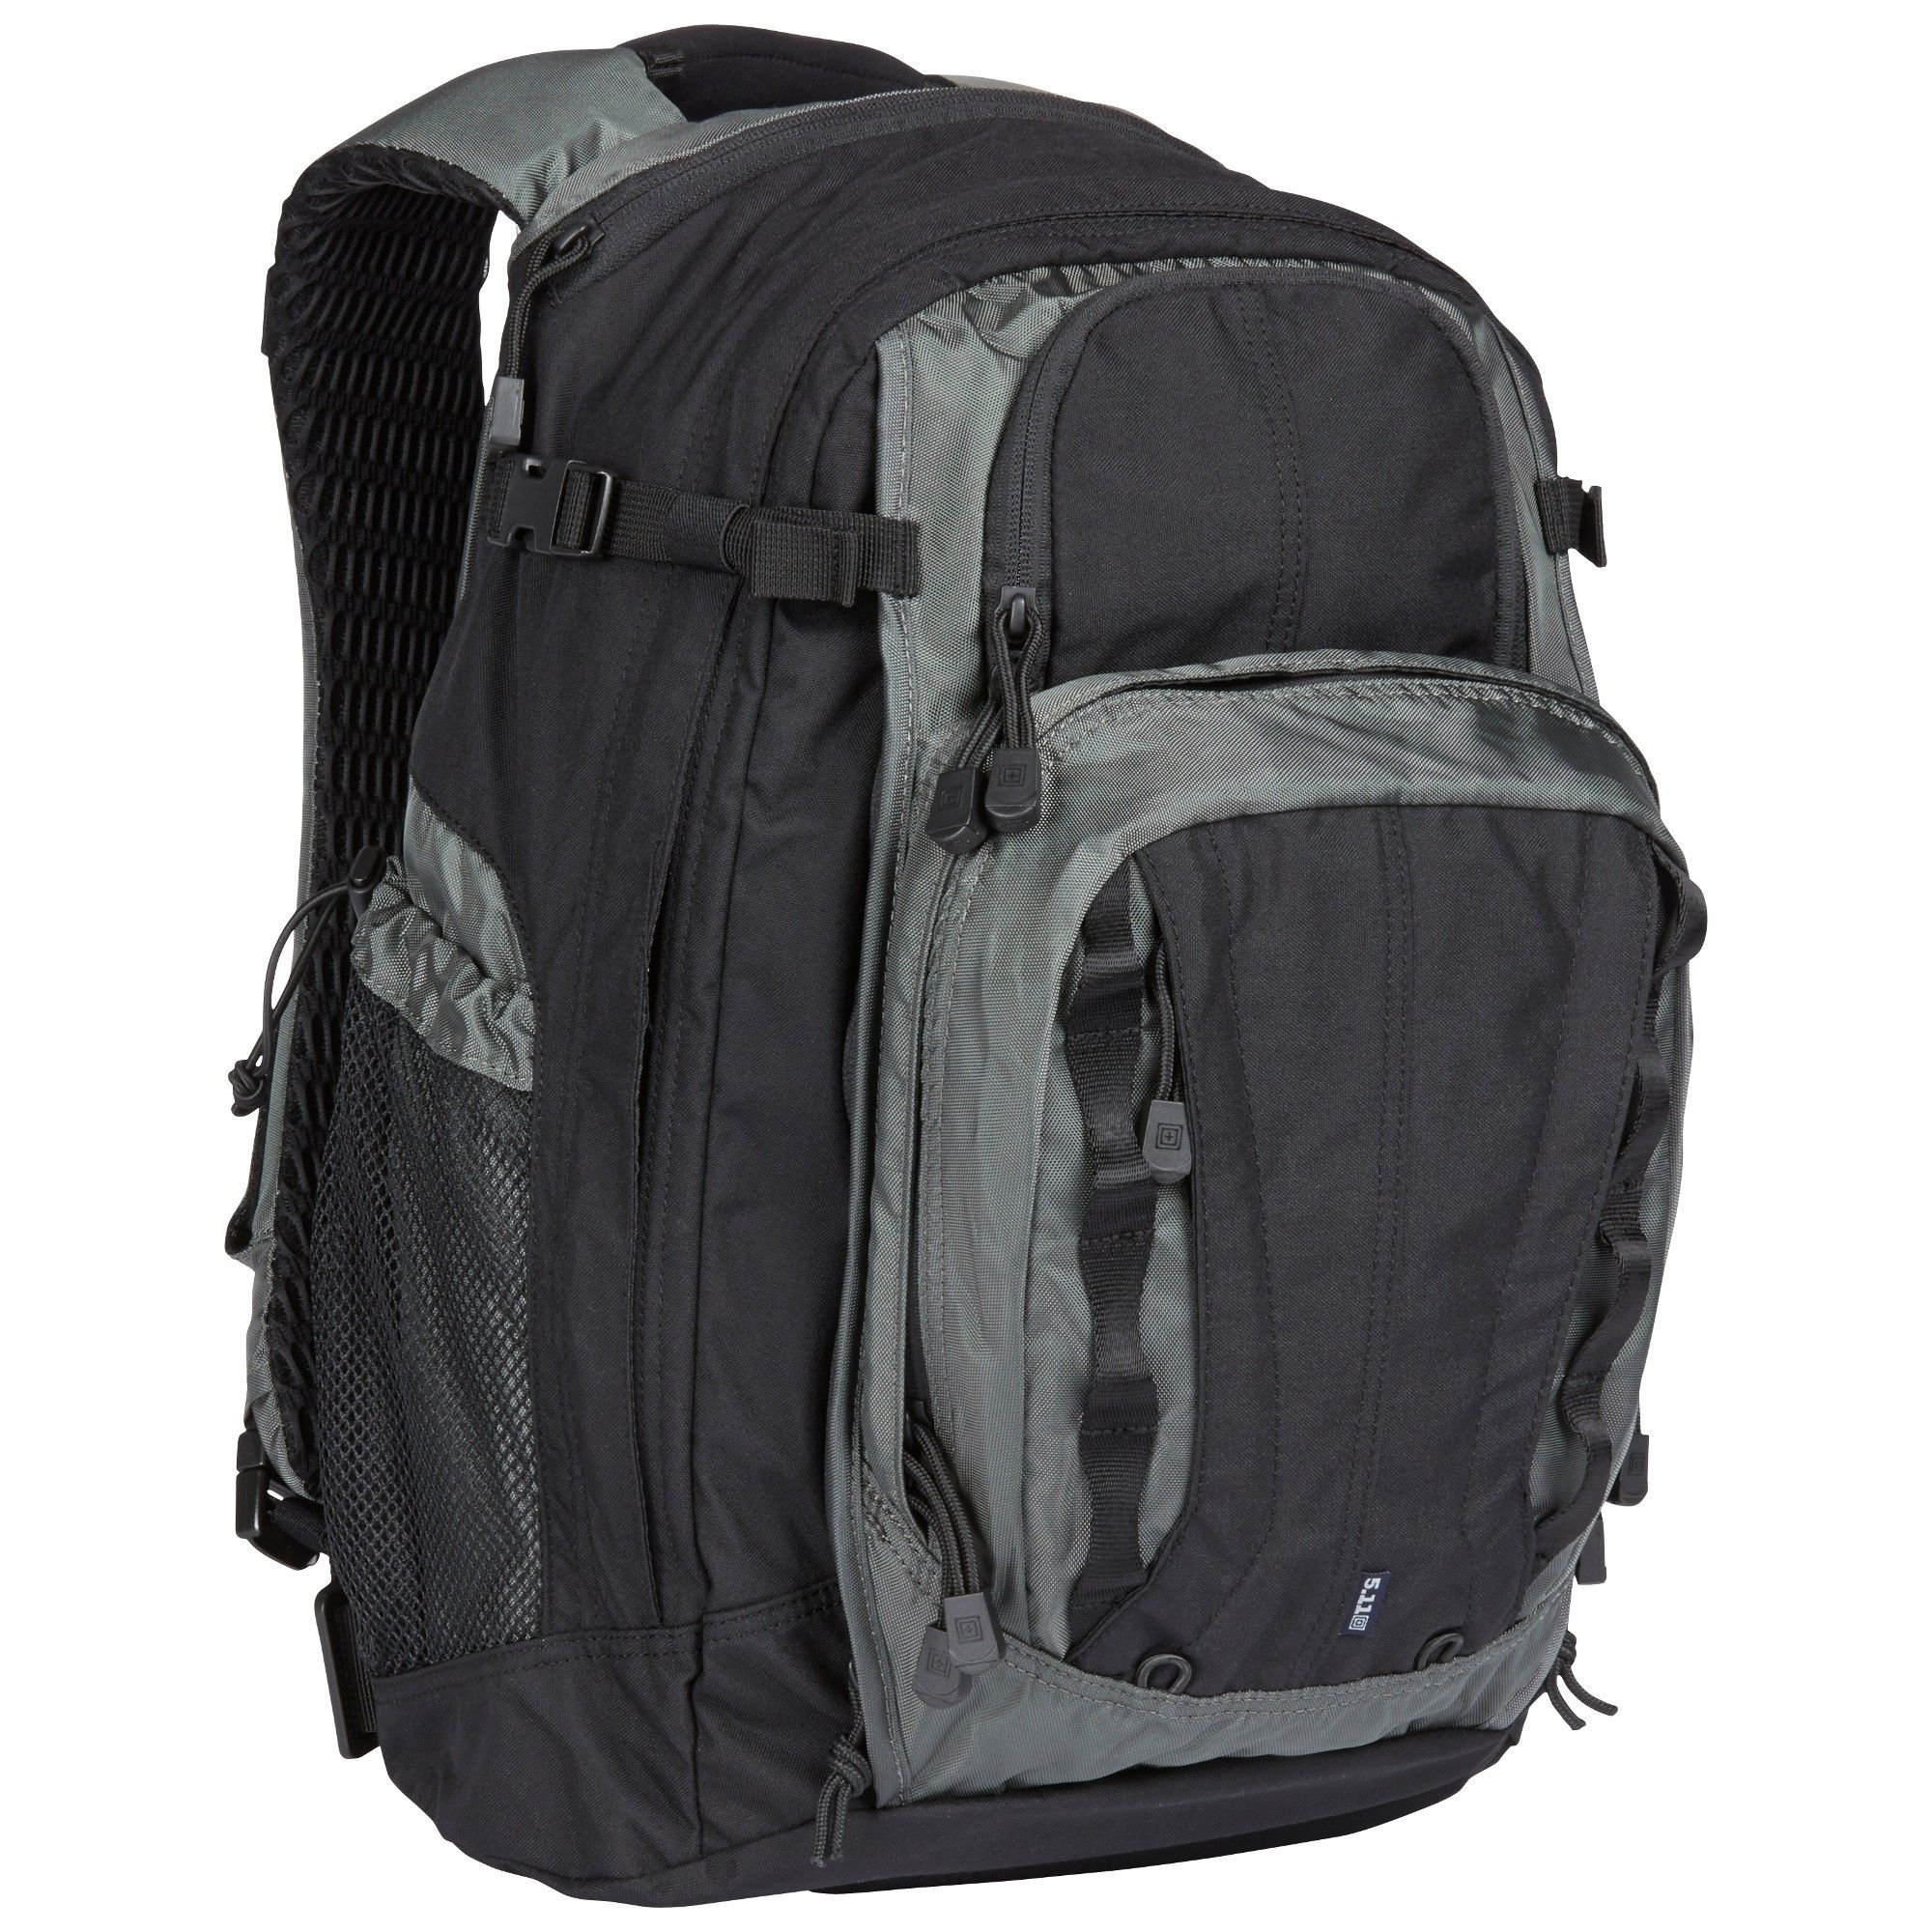 Covert Backpack 5 11 Tactical Covrt 18